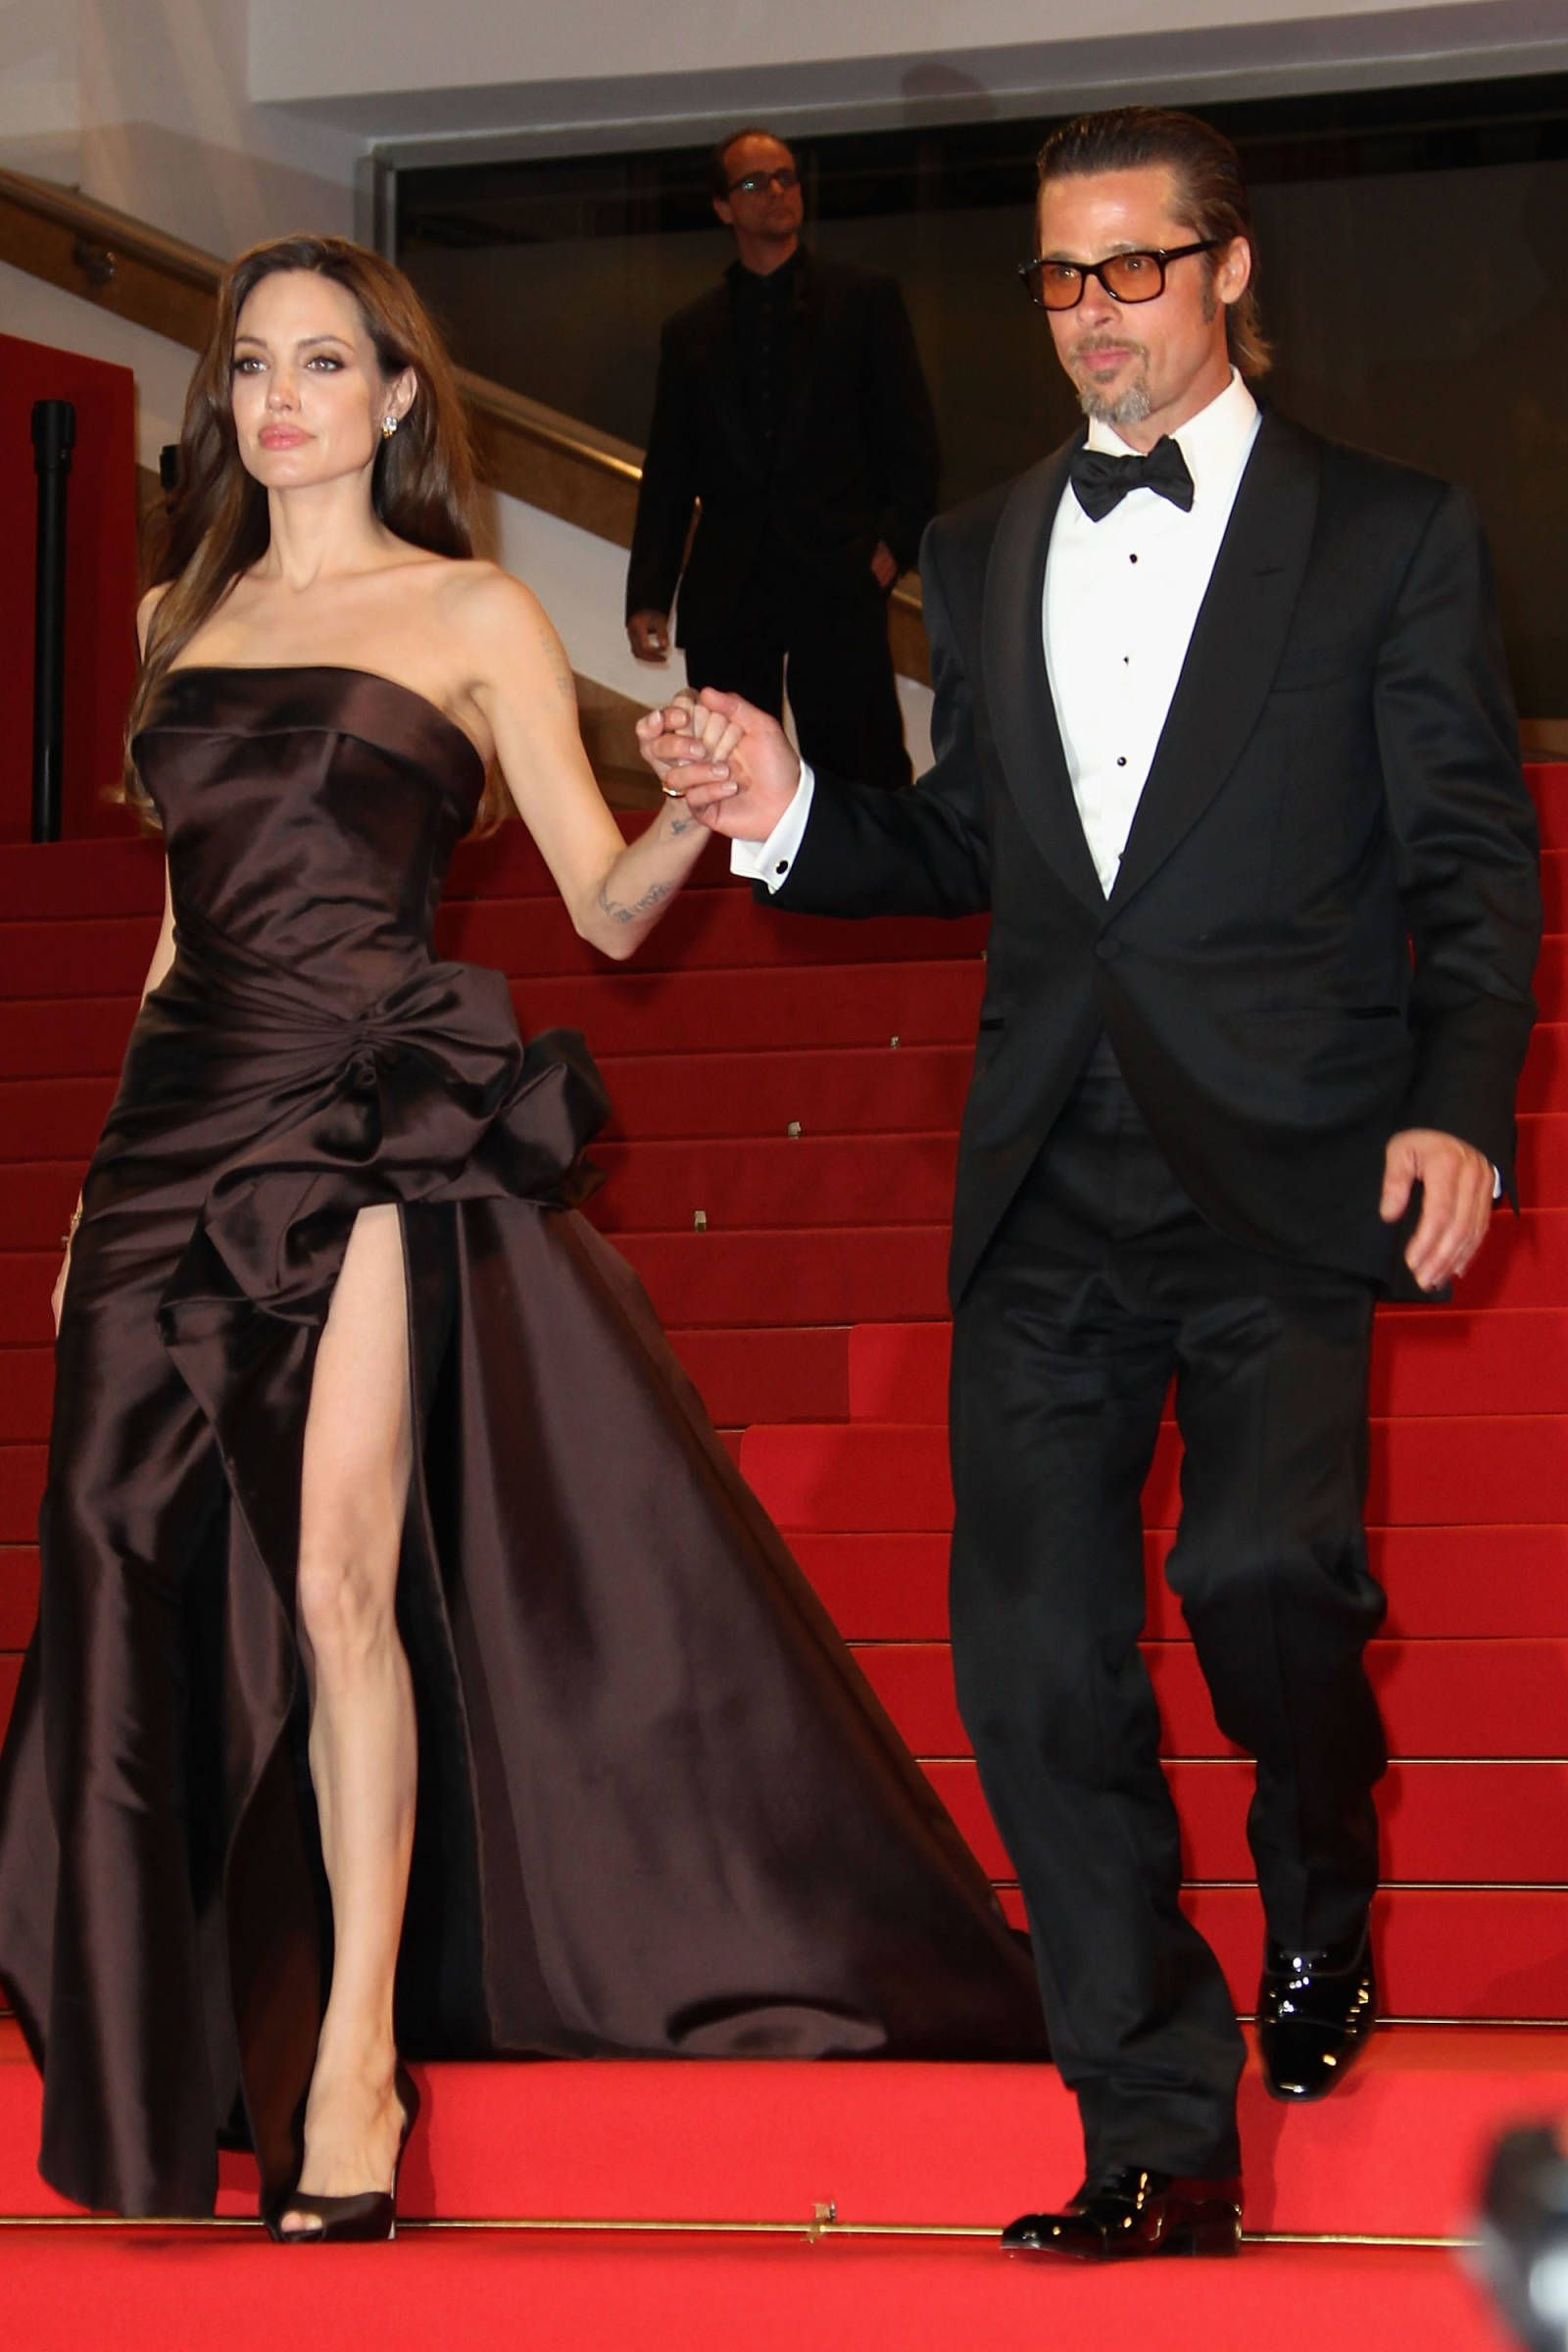 12 Of The Most Heart Melting Photos Of Brad Pitt And Angelina Jolie Angelina Jolie Red Carpet Brad Pitt And Angelina Jolie Angelina Jolie Style